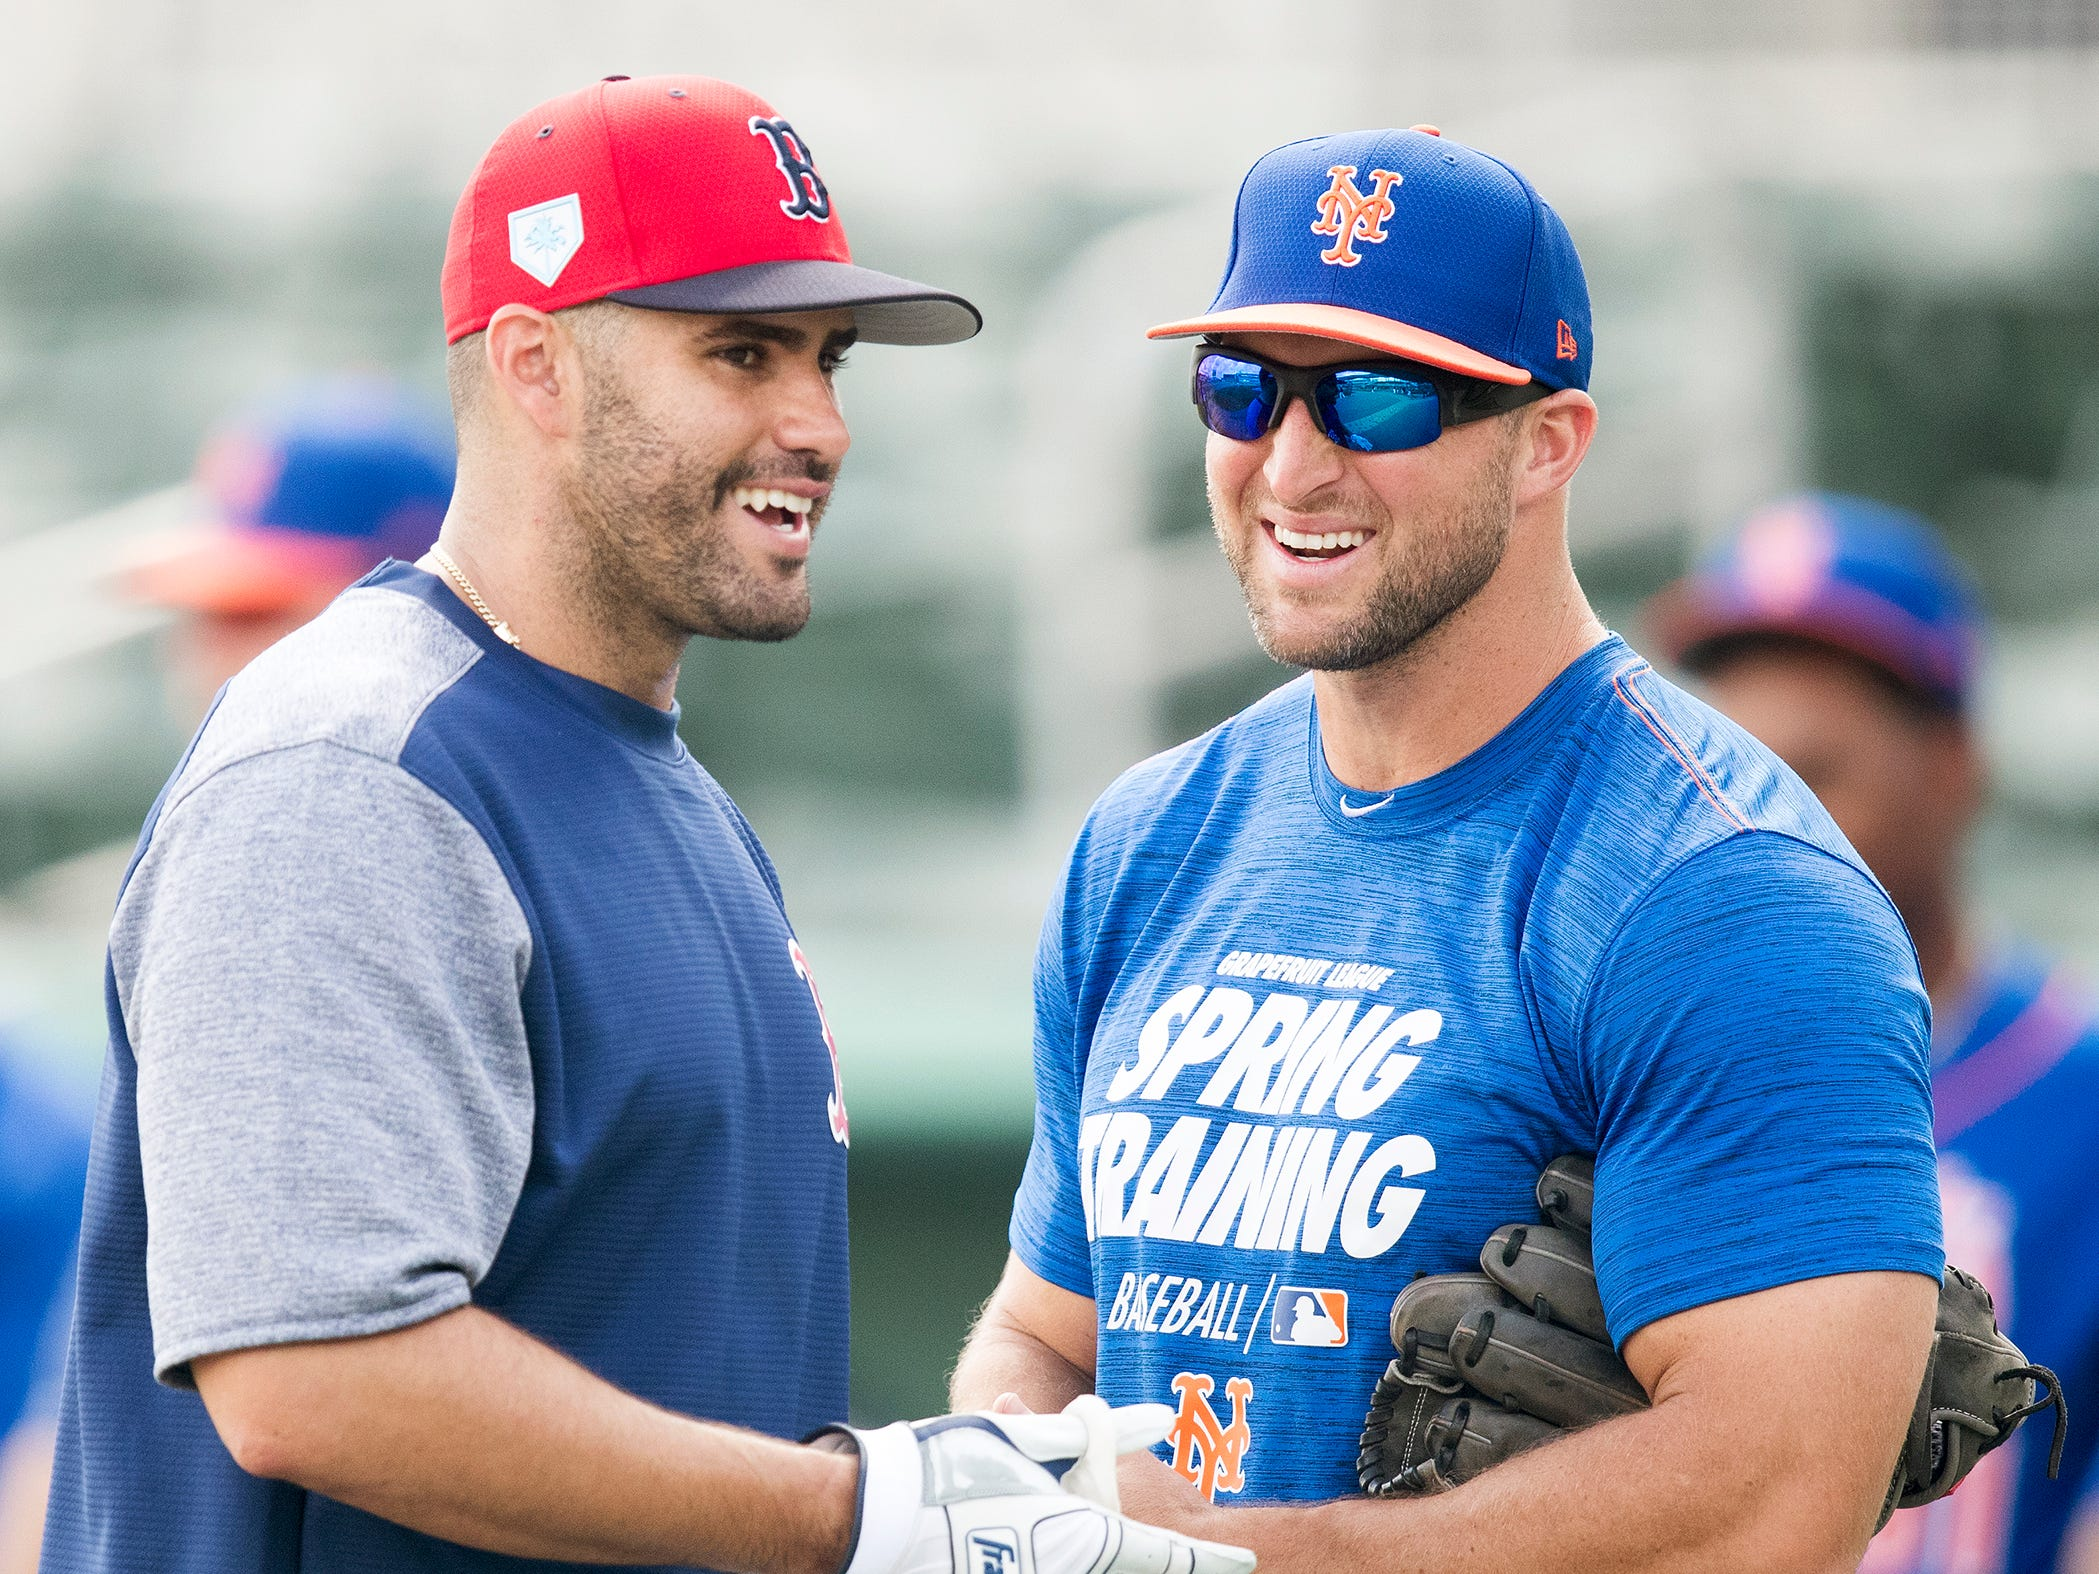 Boston Red Sox J.D. Martinez, left, and New York Mets' Tim Tebow relax before their spring training game on Saturday at JetBlue Park in Fort Myers.